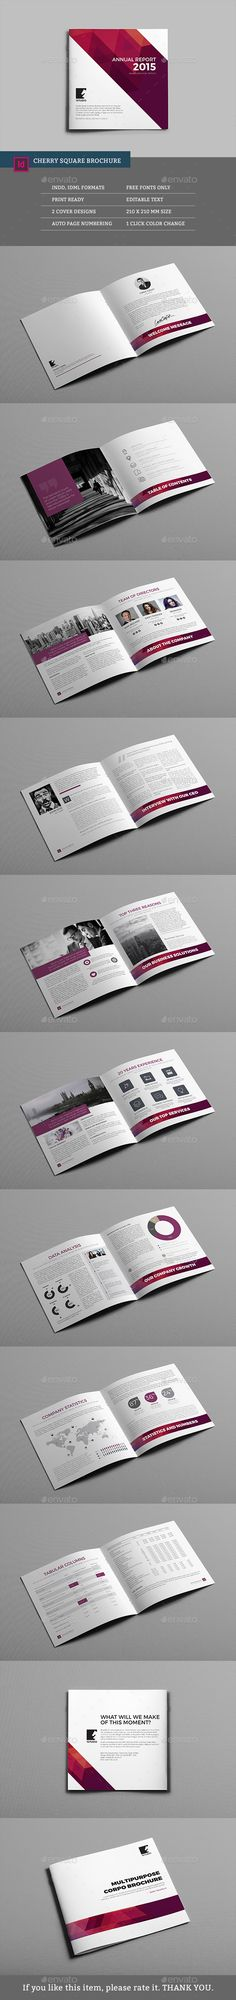 Buy Cherry Square Multipurpose Brochure by graphix_shiv on GraphicRiver. Cherry Square Multipurpose Brochure – Features Cherry Square Multipurpose Brochure Template that is super simple to e. Bi Fold Brochure, Brochure Layout, Business Brochure, Brochure Template, Brochure Ideas, Corporate Brochure, Page Layout Design, Book Layout, Graphic Design Brochure